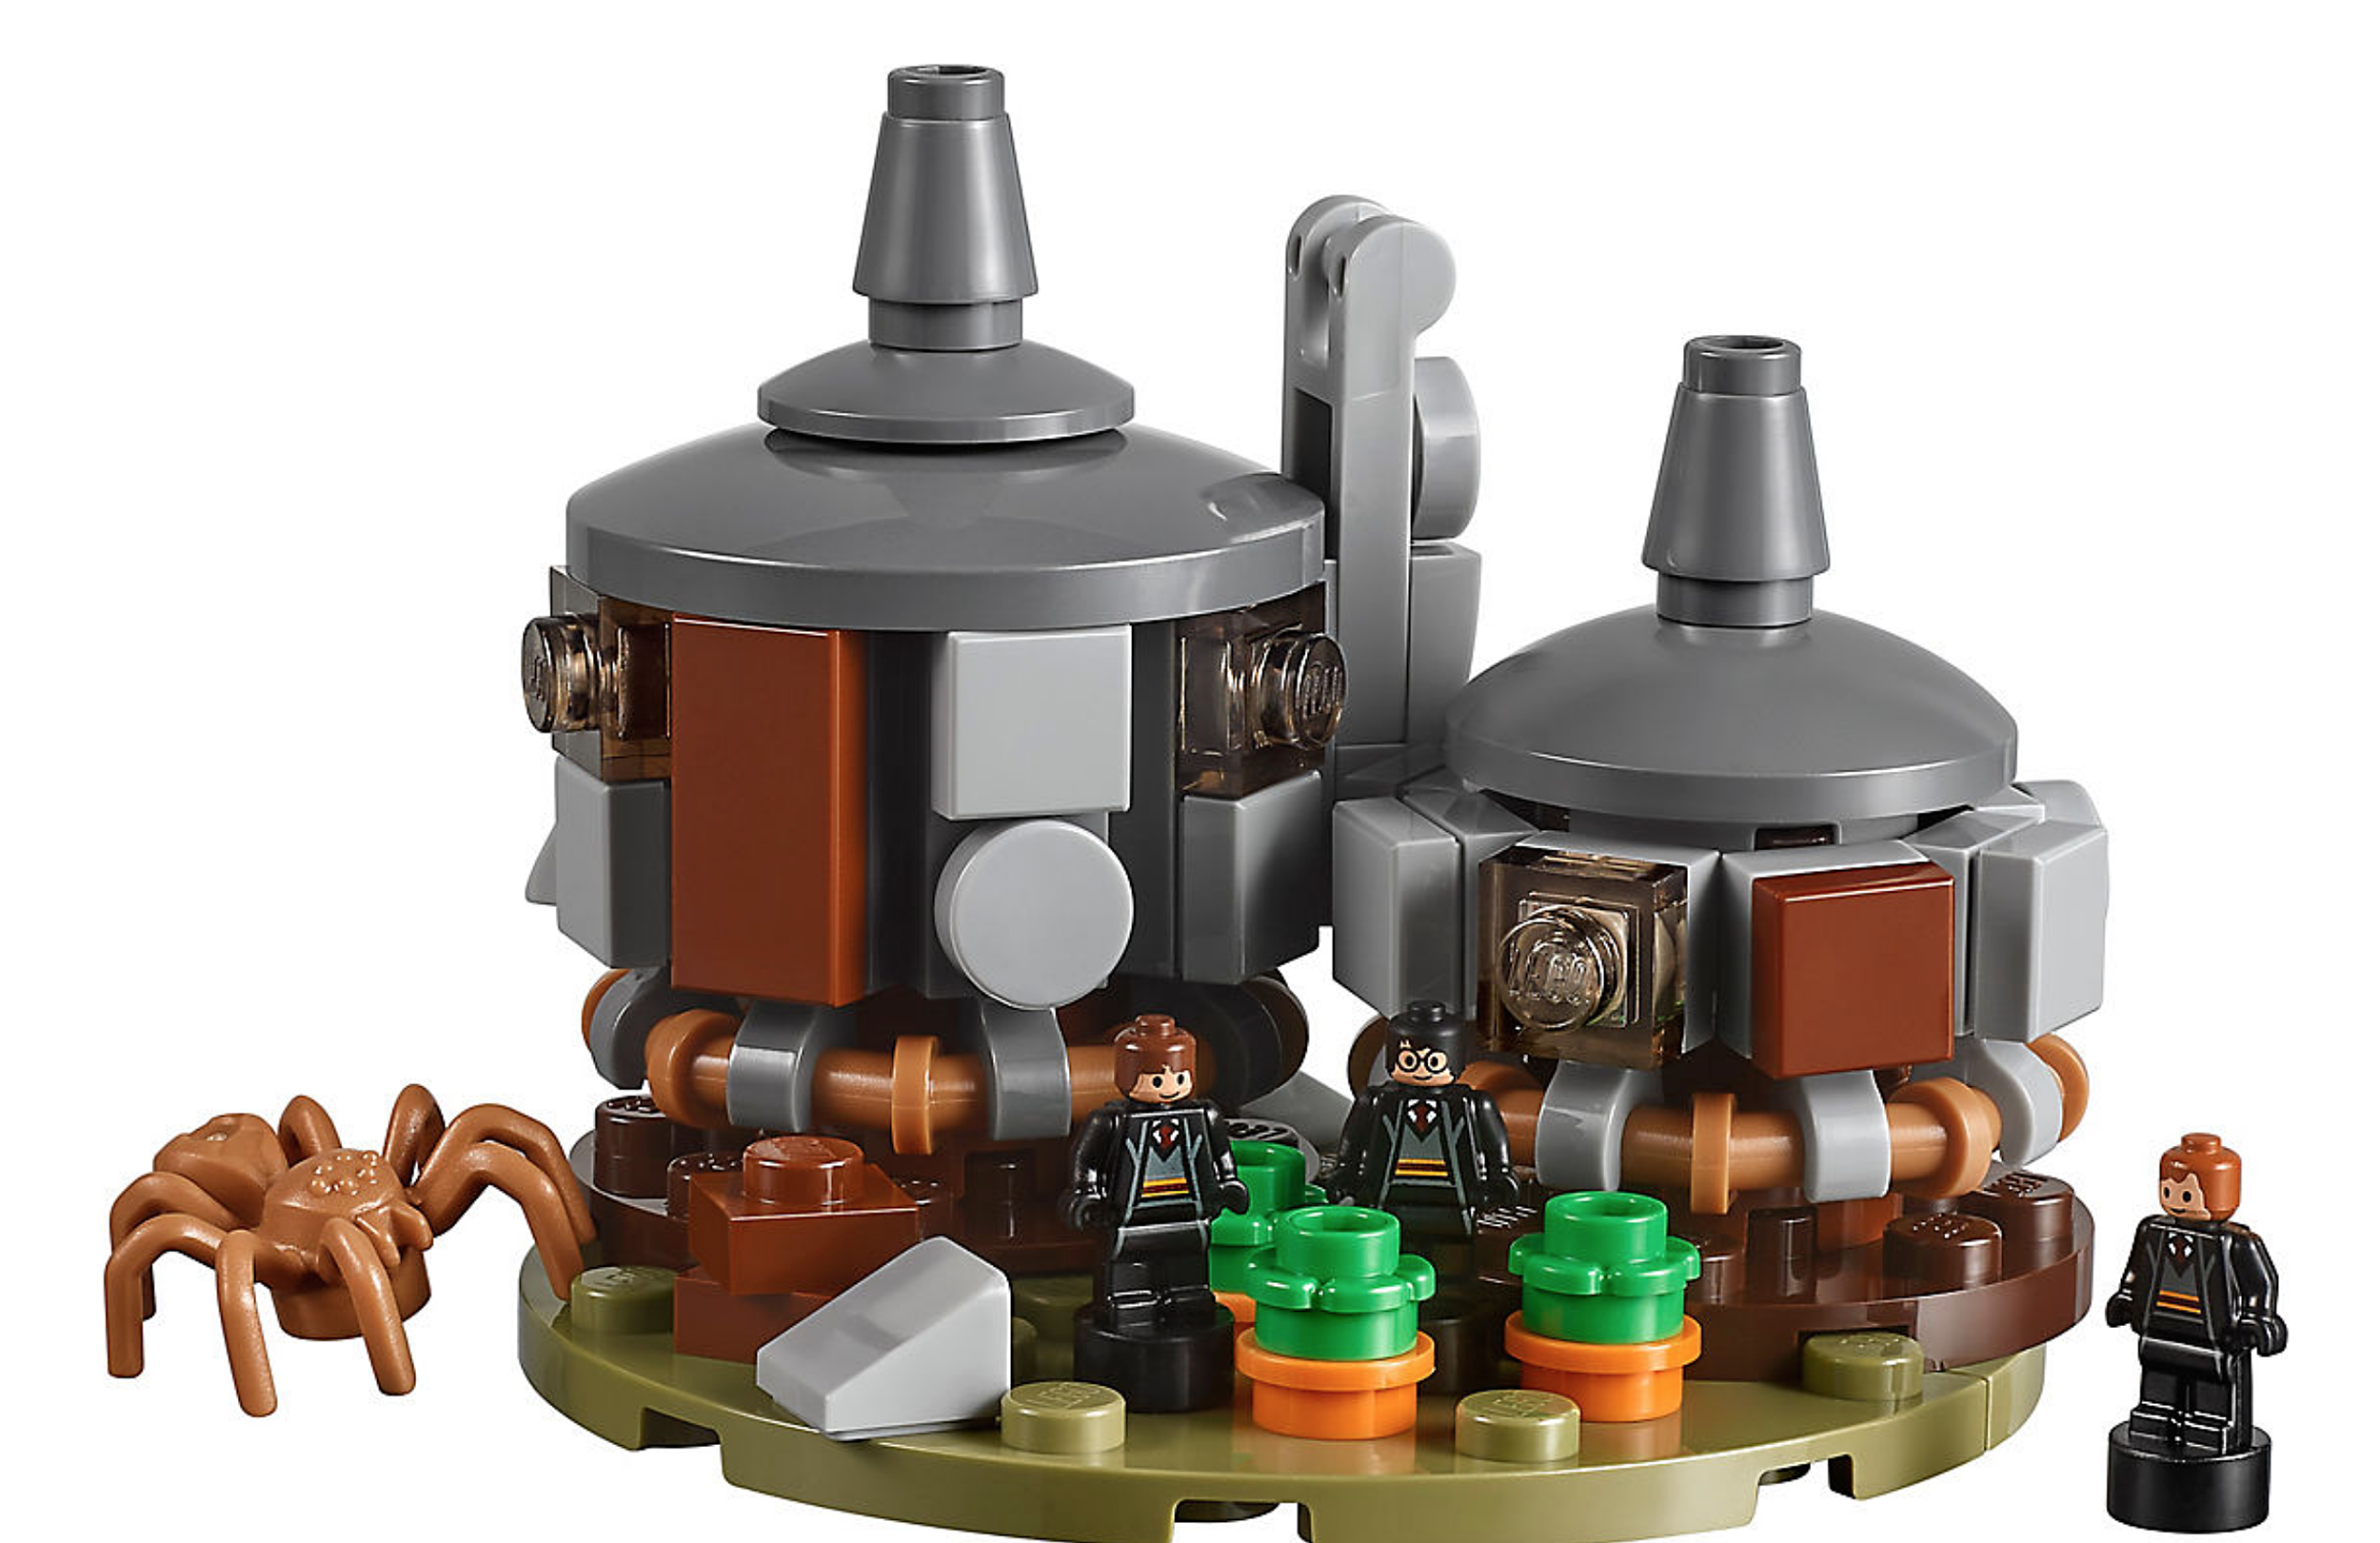 New Harry Potter Hogwarts Lego Set Is The Coolest Thing Ever